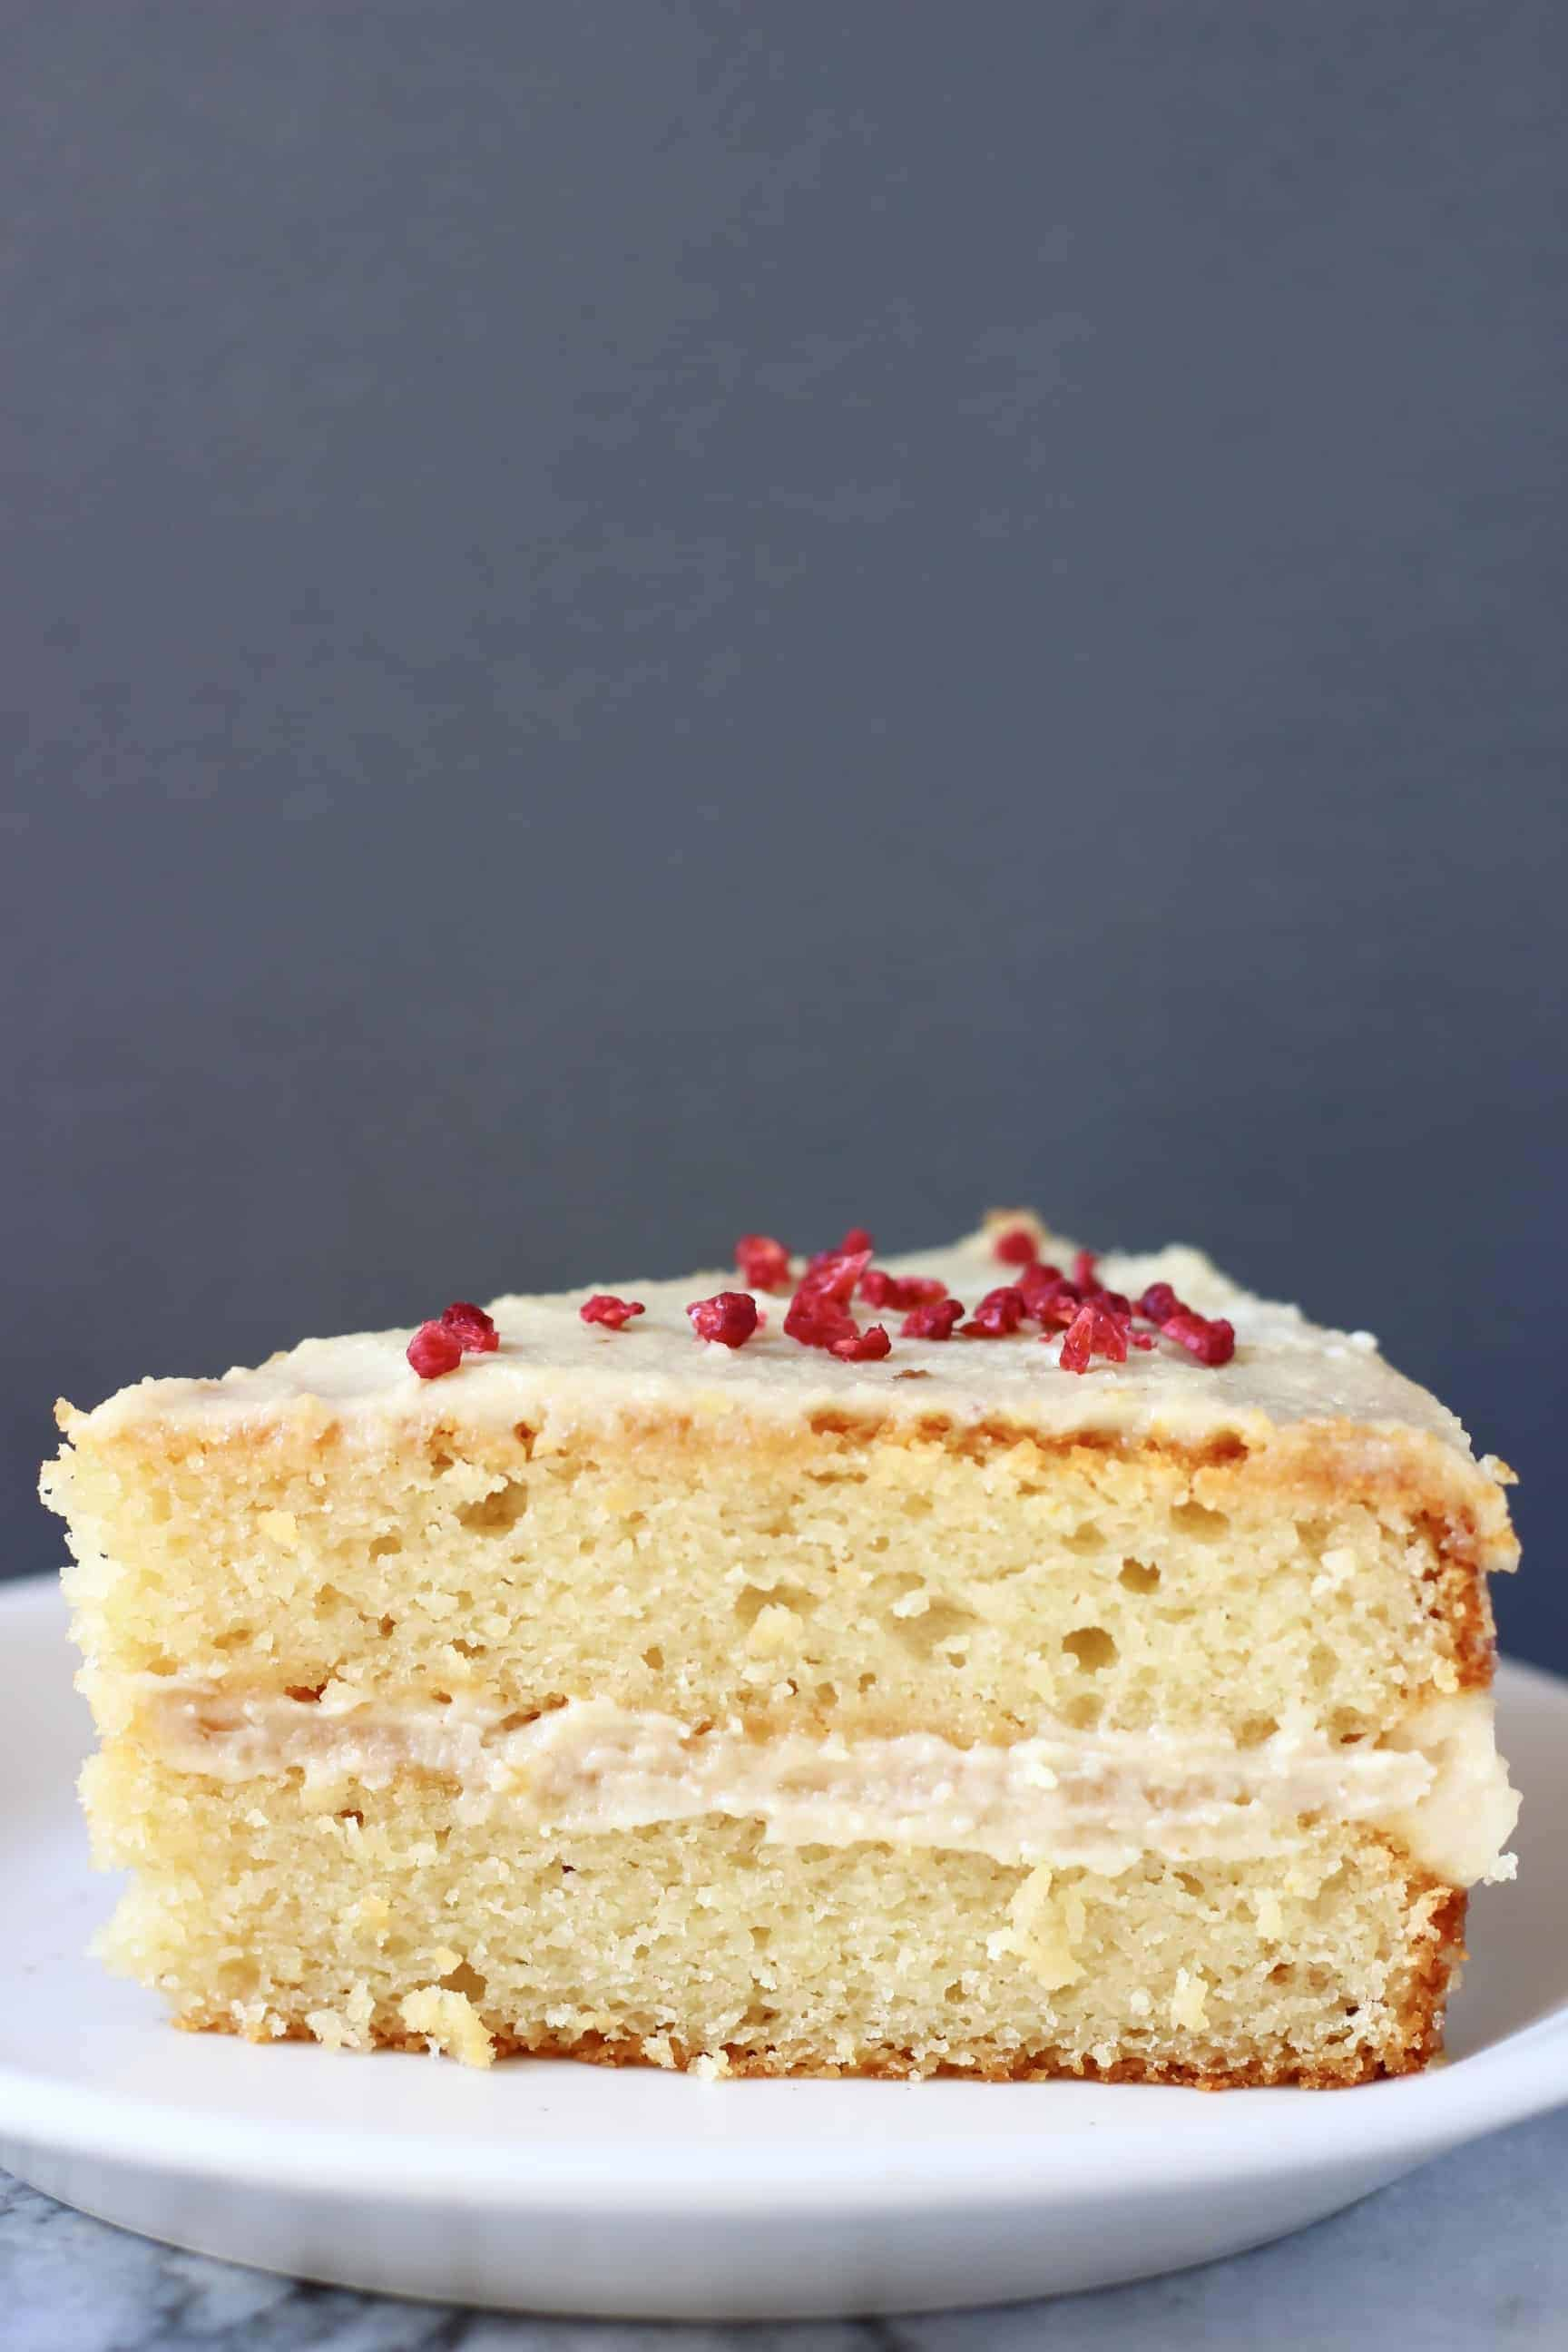 A slice of gluten-free vegan vanilla cake with white frosting on a plate